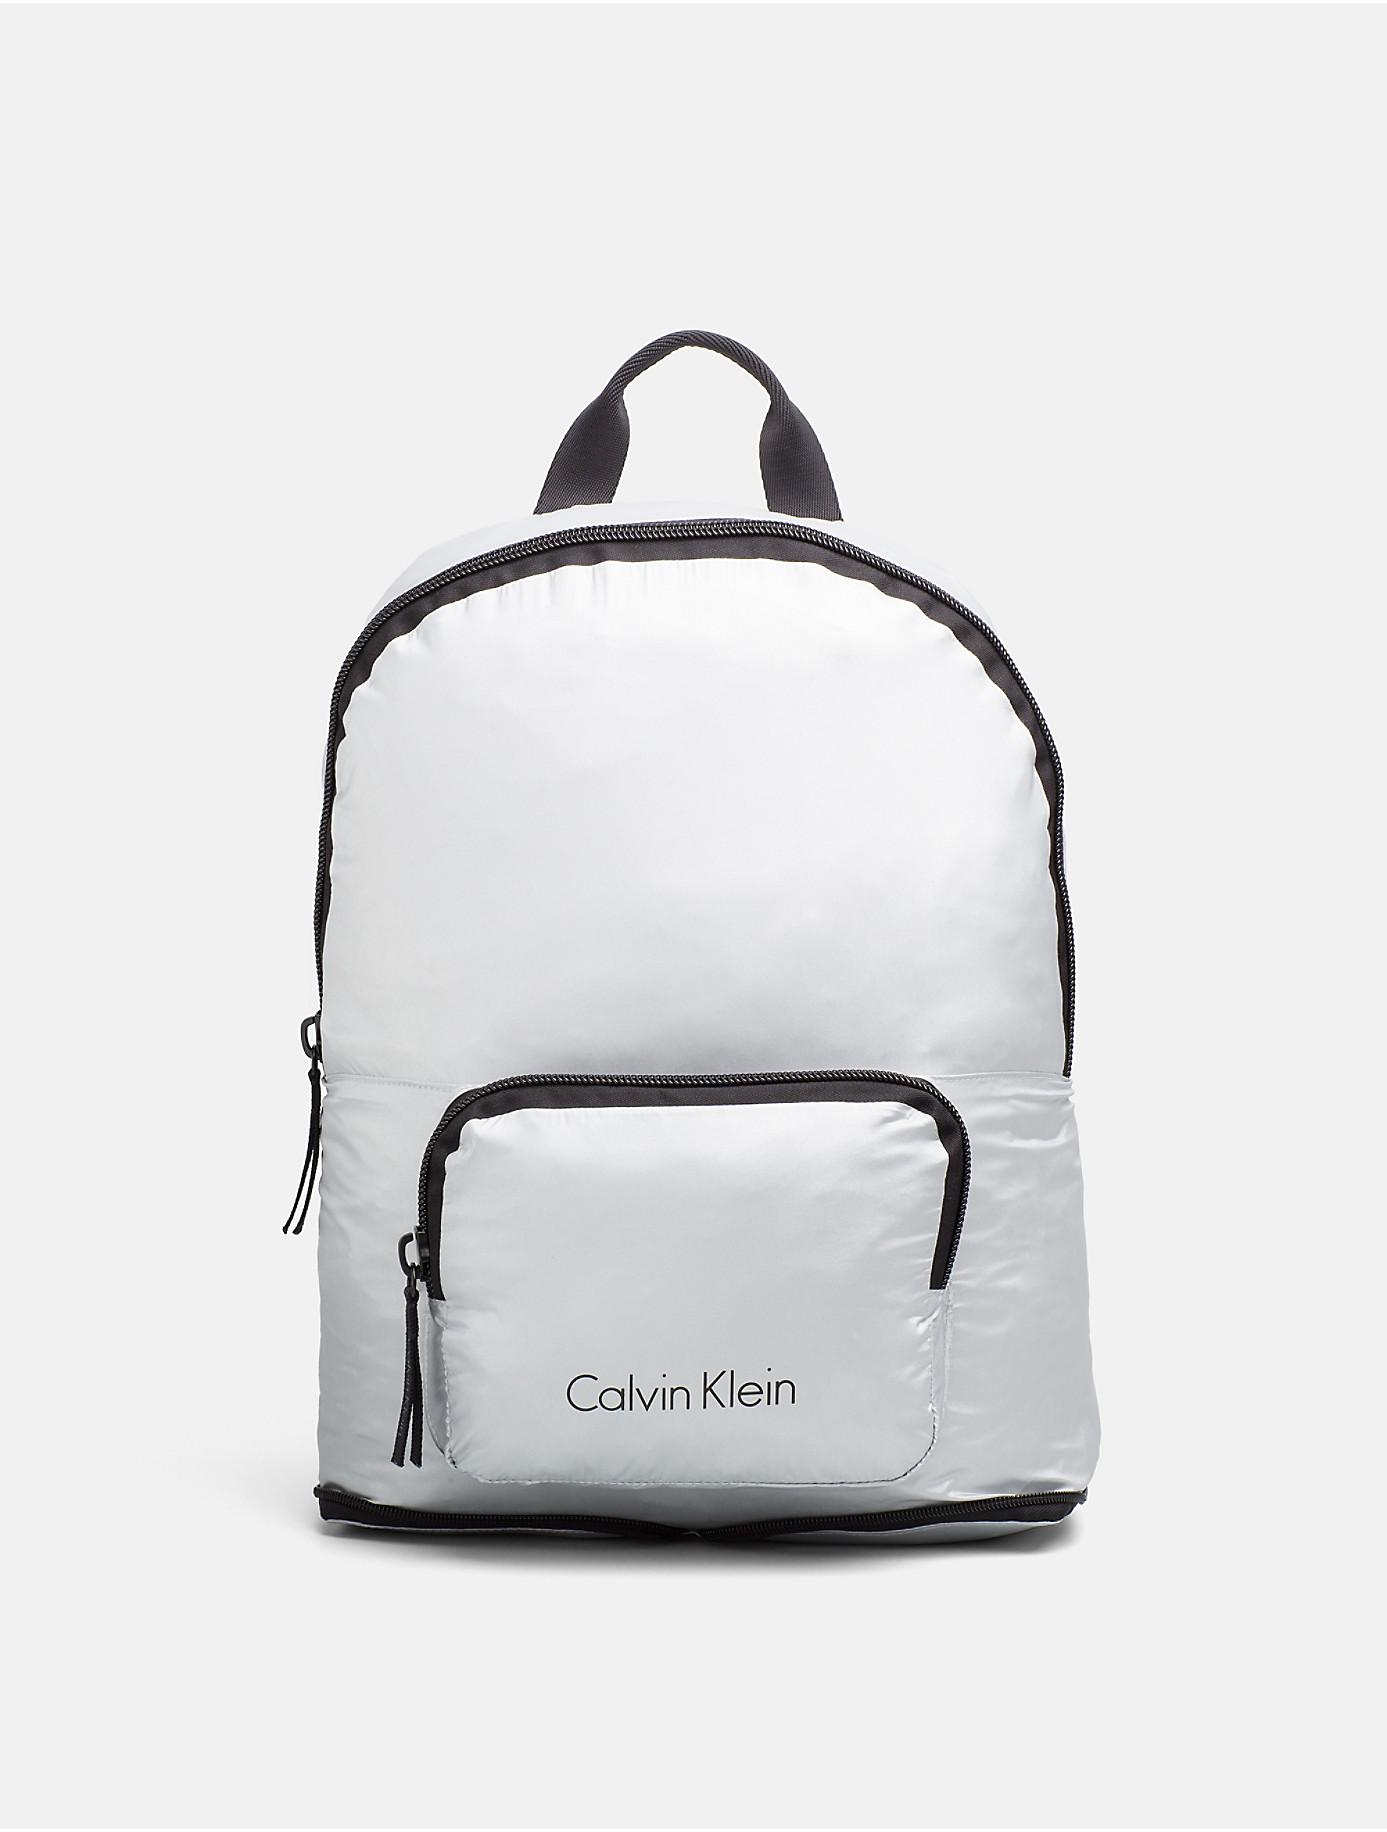 Logo embroidered backpack CALVIN KLEIN 205W39NYC Outlet For Sale The Cheapest Discount Great Deals Cheap Fast Delivery VnlIN